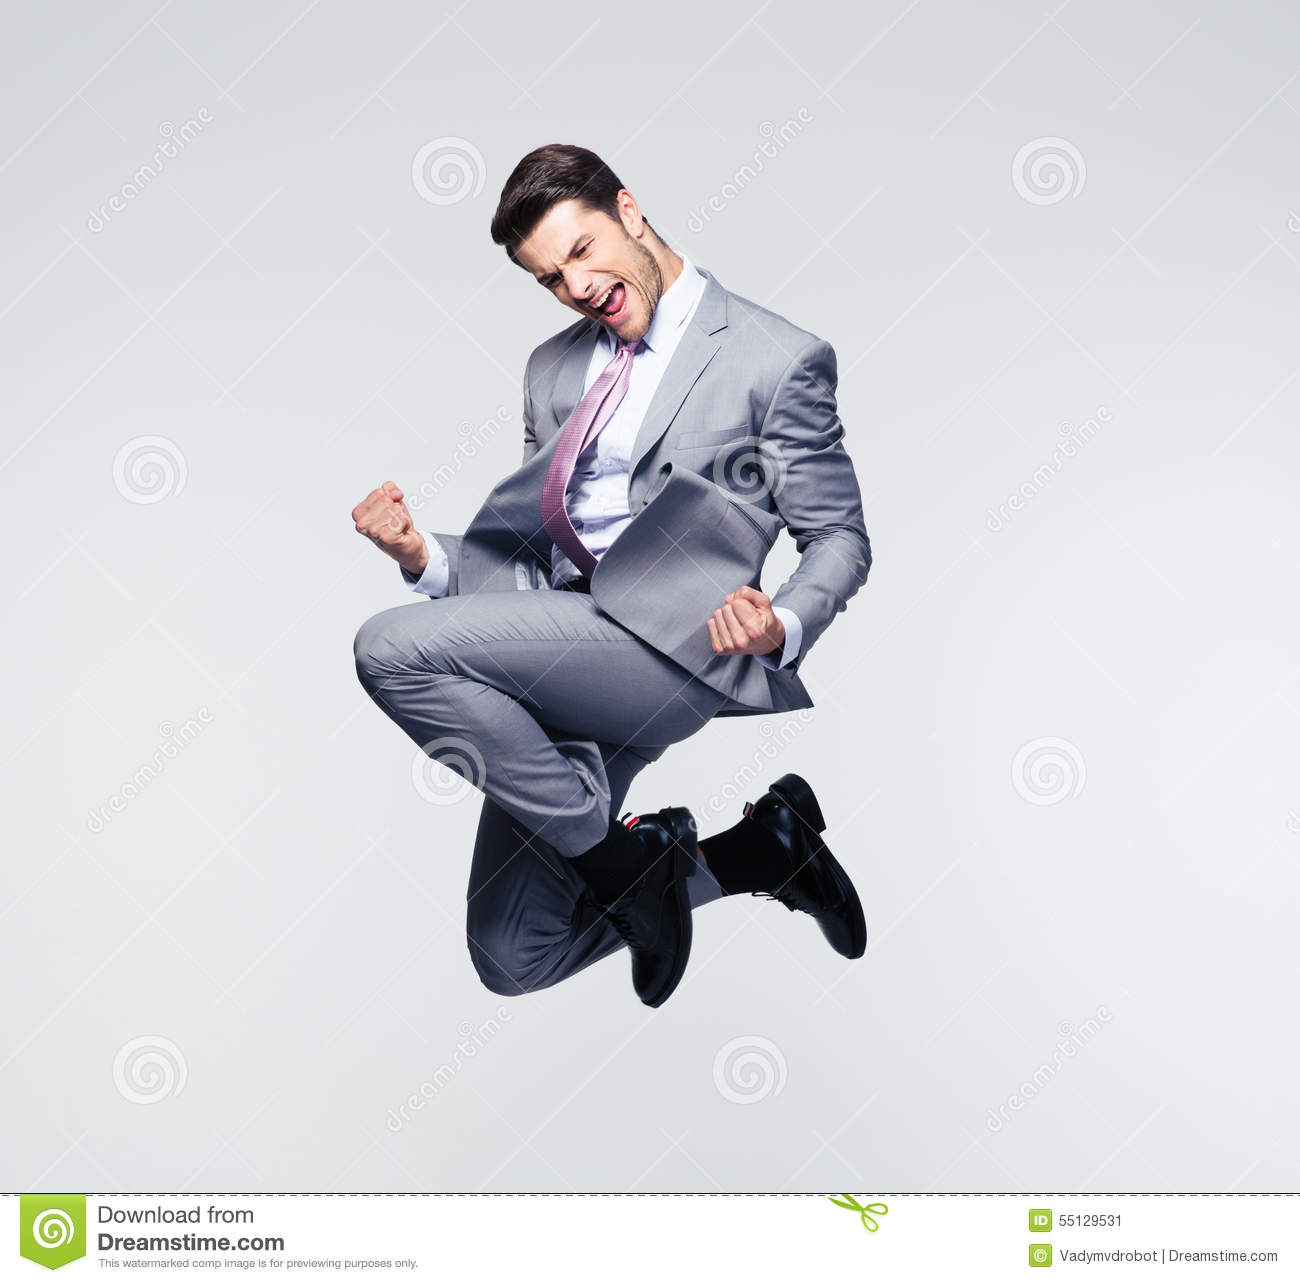 Funny businessman jumping in air